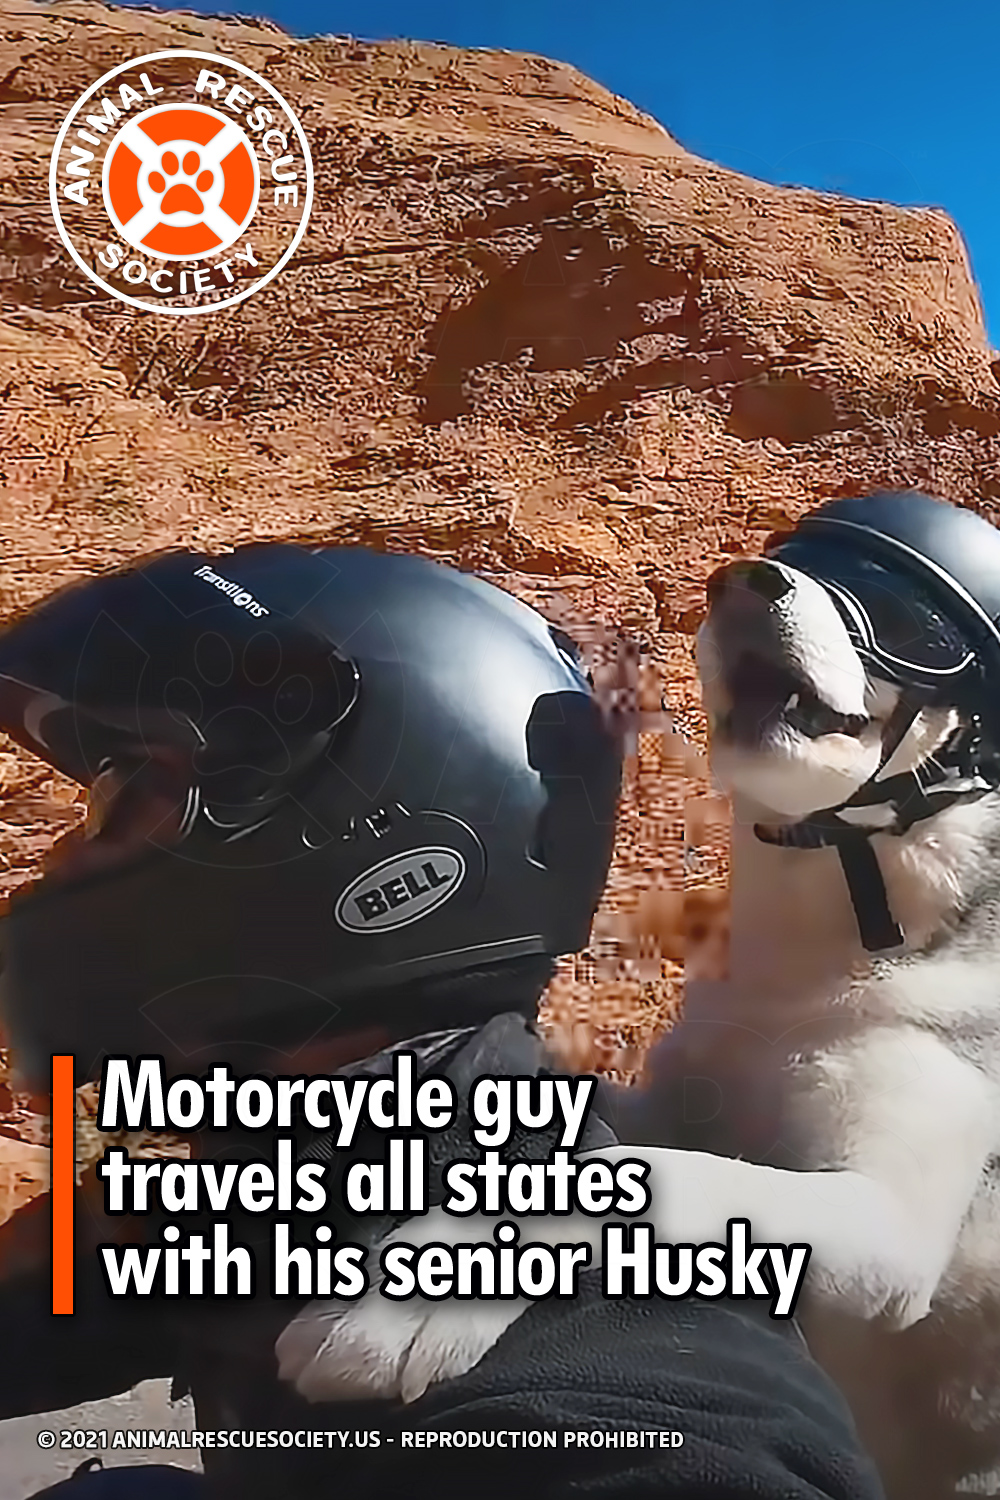 Motorcycle guy travels all states with his senior Husky